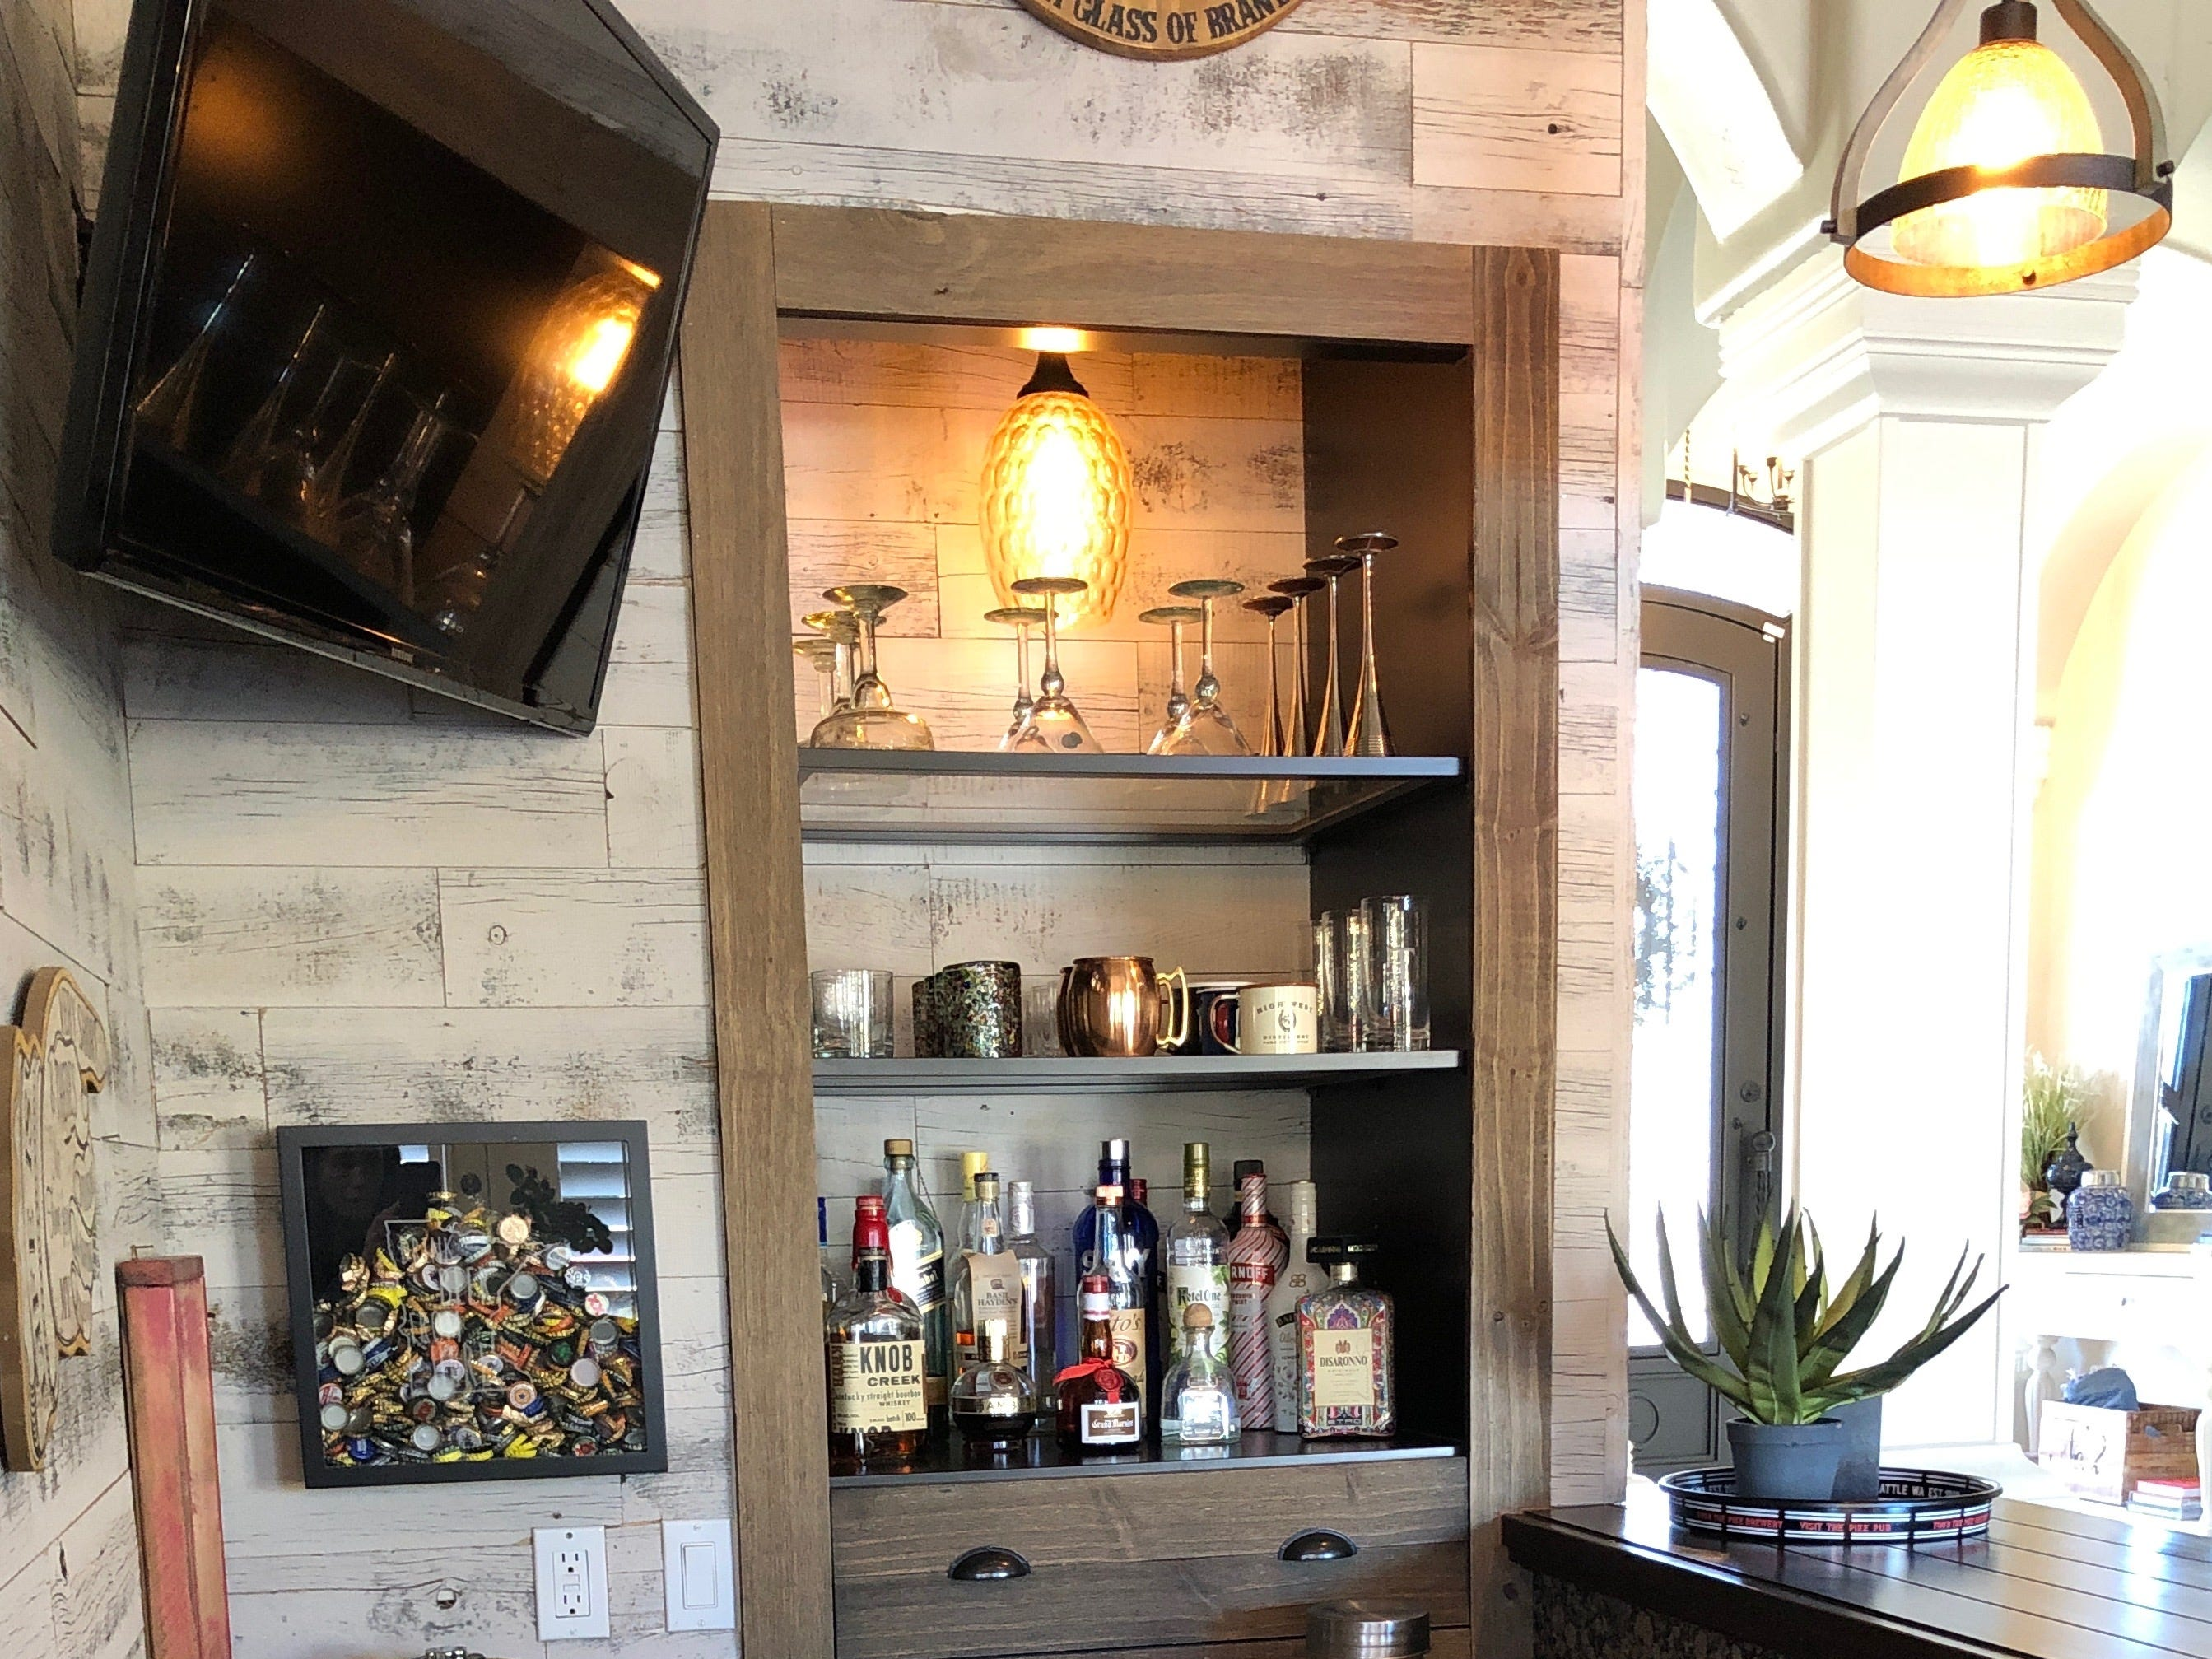 An Ikea closet was transformed into a storage cubby for liquor and glasses. The idea came from Mark Hutchinson, a personal friend who does remodeling work on the side.